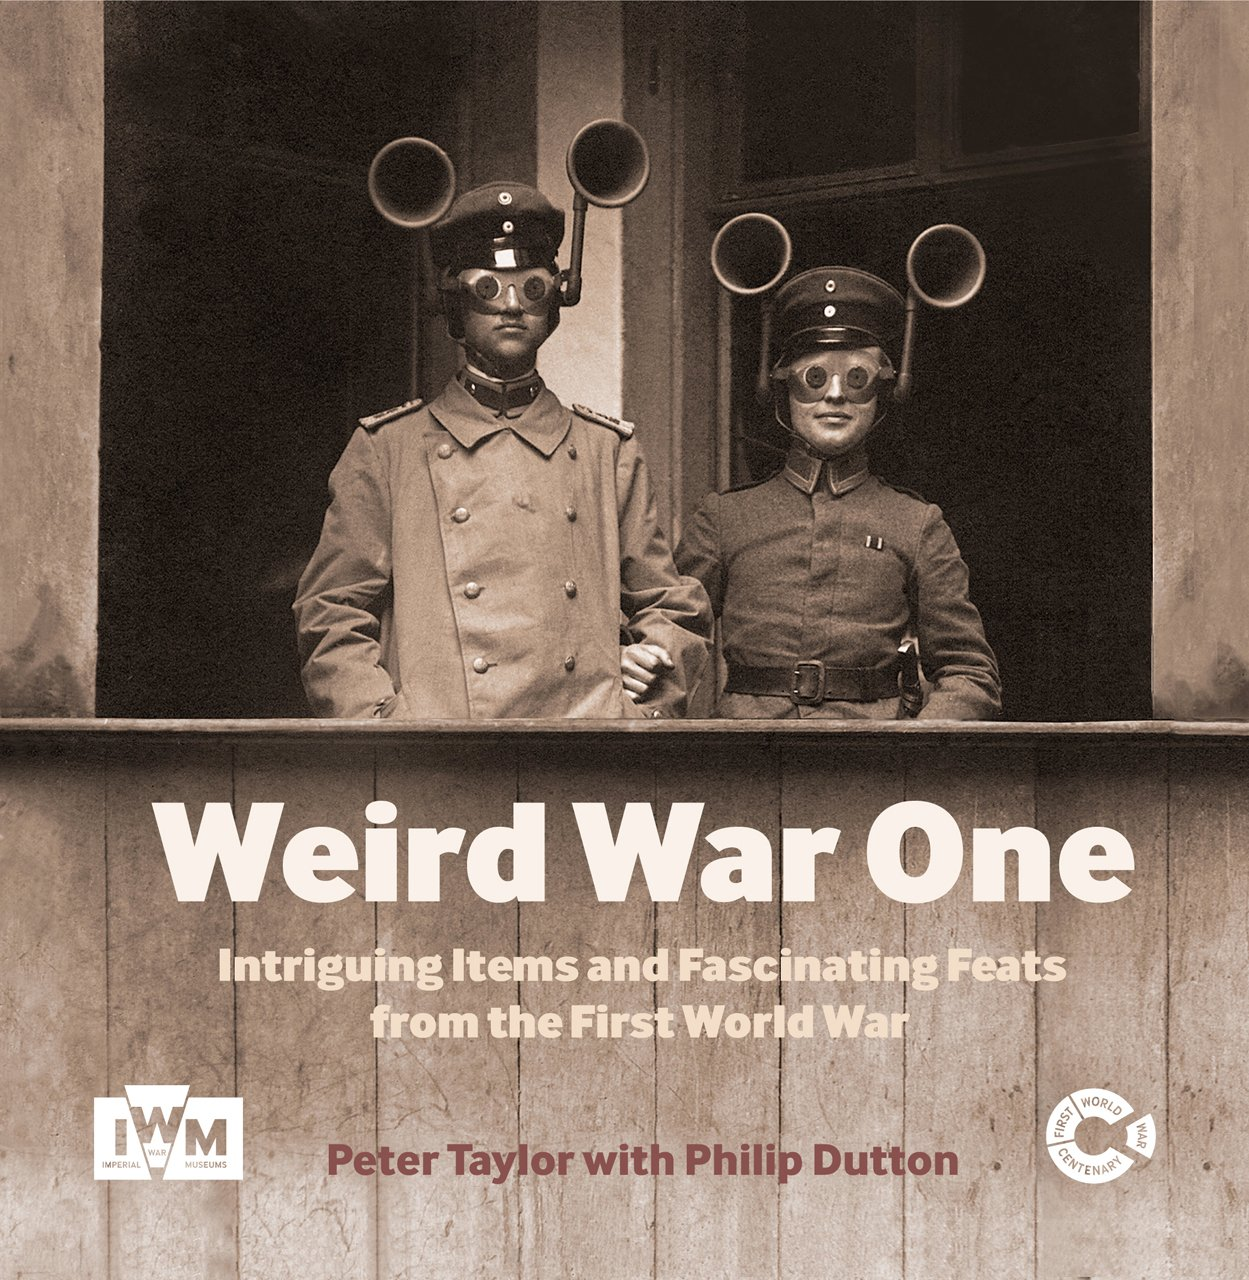 Weird War One: Intriguing Items and Fascinating Feats from the First World War pdf